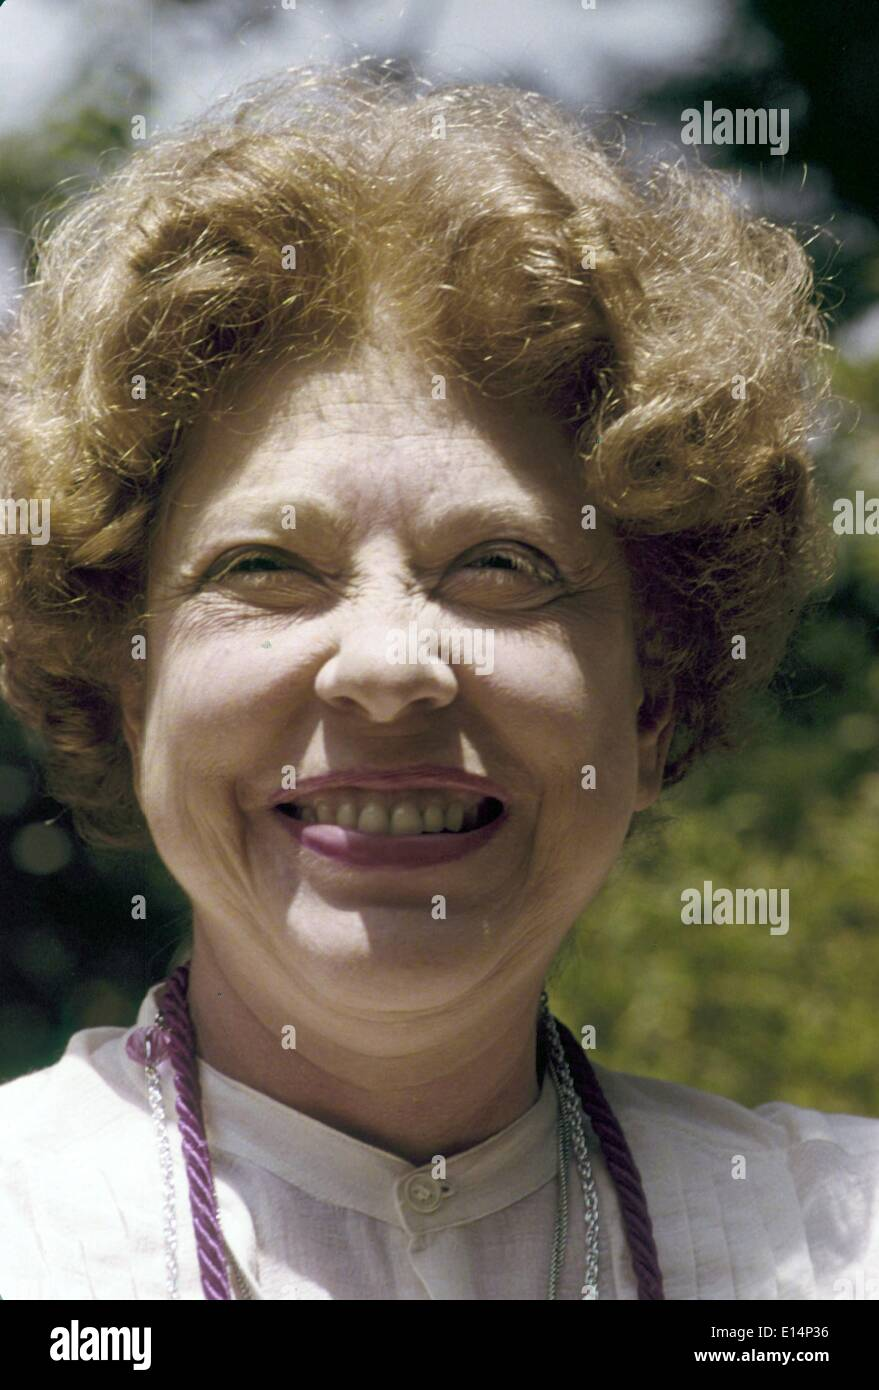 Judy Canova High Resolution Stock Photography And Images Alamy Which state has the most diana canova fans? https www alamy com judy canovasupplied by photos inc1978g7758bcredit image supplied by image69561274 html